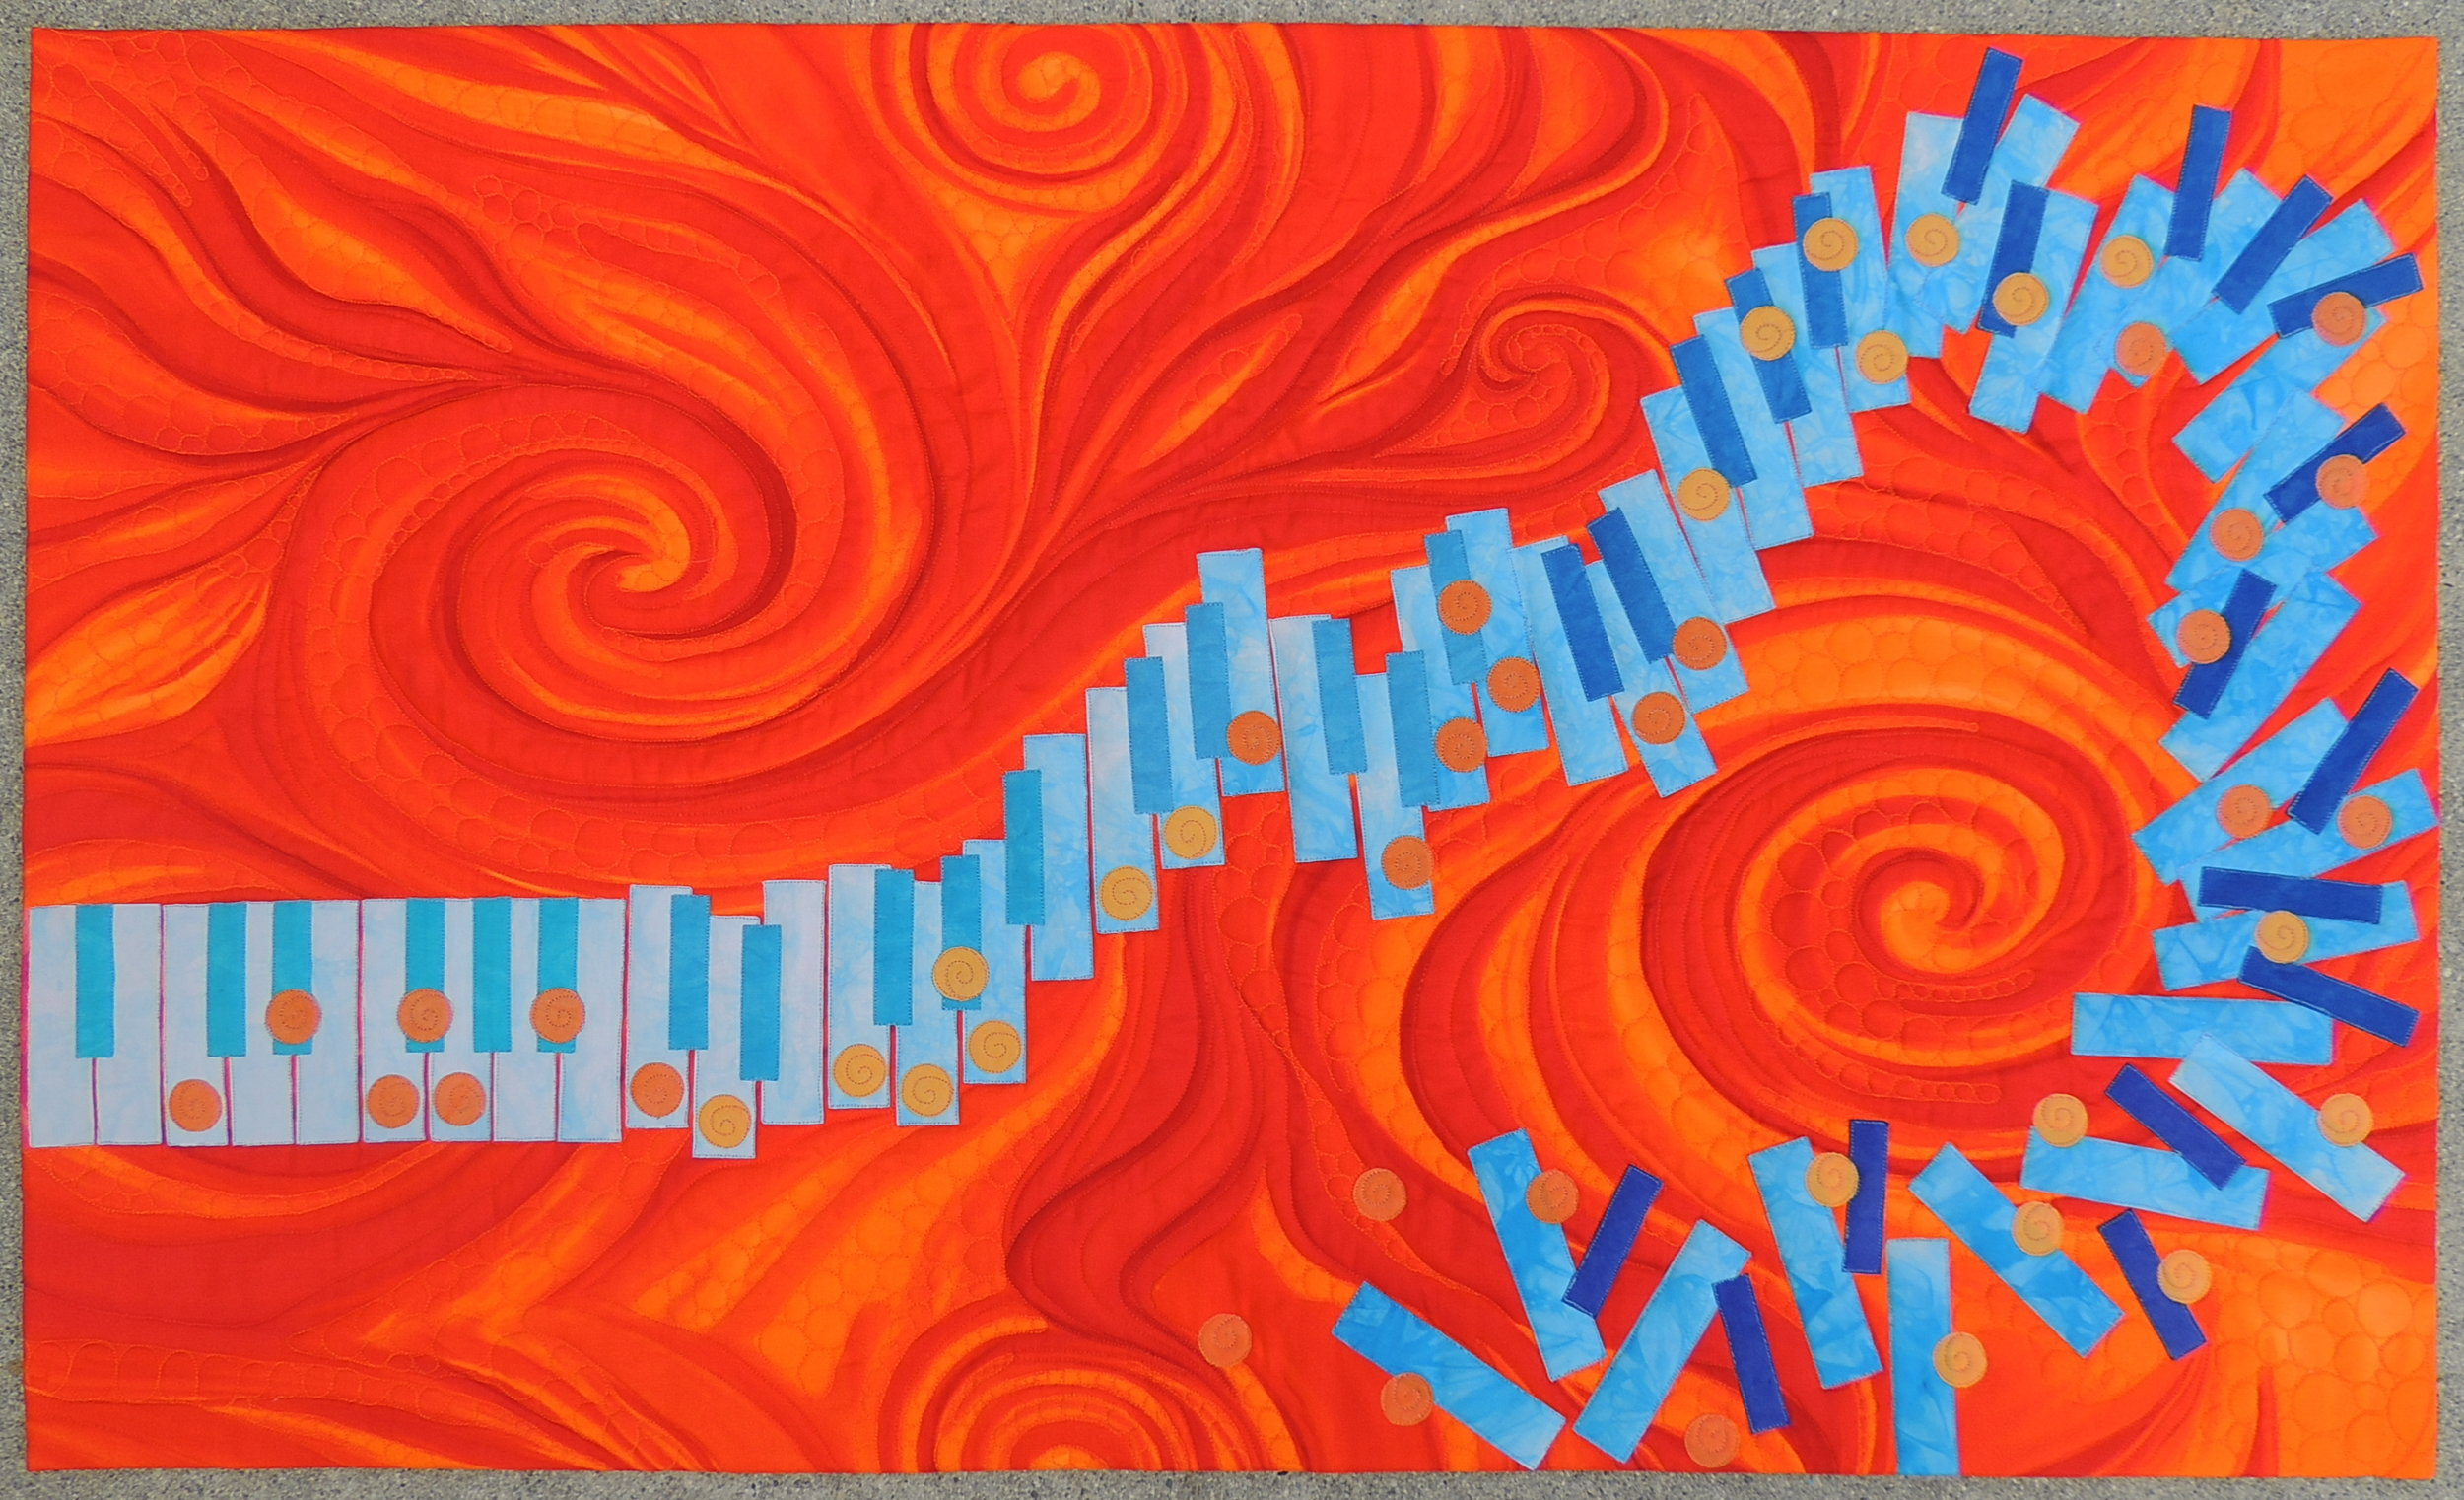 "7. Orange You Glad I Got the Blues?  April 2016 40"" x 24"" Original applique design using hand dyed fabrics and a commercial print to simulate the improvisational nature of Jazz Music.  Exhibits/Awards: Juried into International Quilt Festival (November 2018), 2nd Place in California State Fair in the Art Quilts Small Category (July 2017), won Honorable Mention Ribbon at Pacific International Quilt Festival (October 2016), juried into Jazz Impressions Exhibit at the San Jose Museum of Quilts & Textiles (May 2016).   Blog Post"